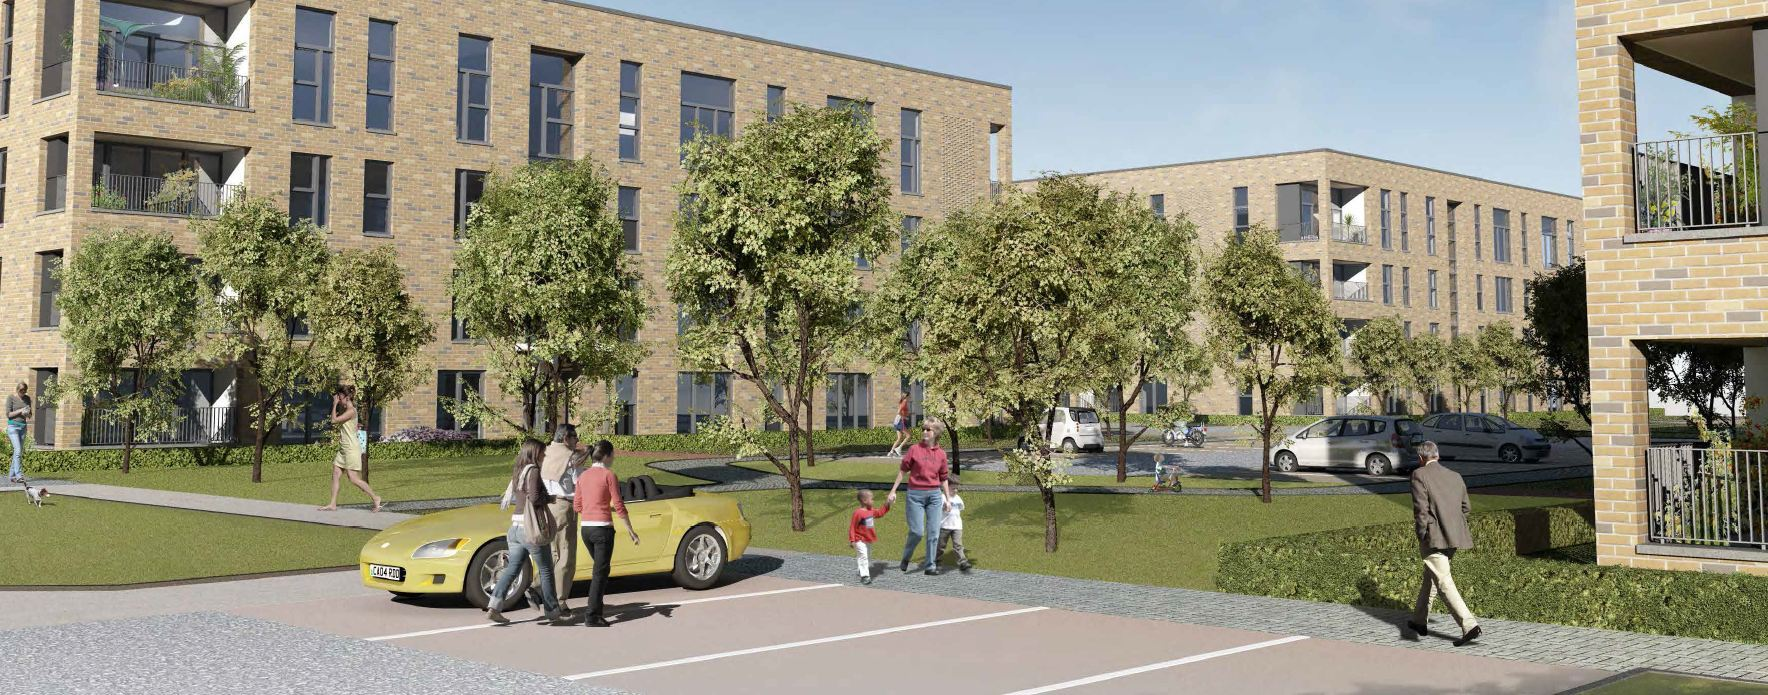 The plans are for the city's former Summerhill Academy site.